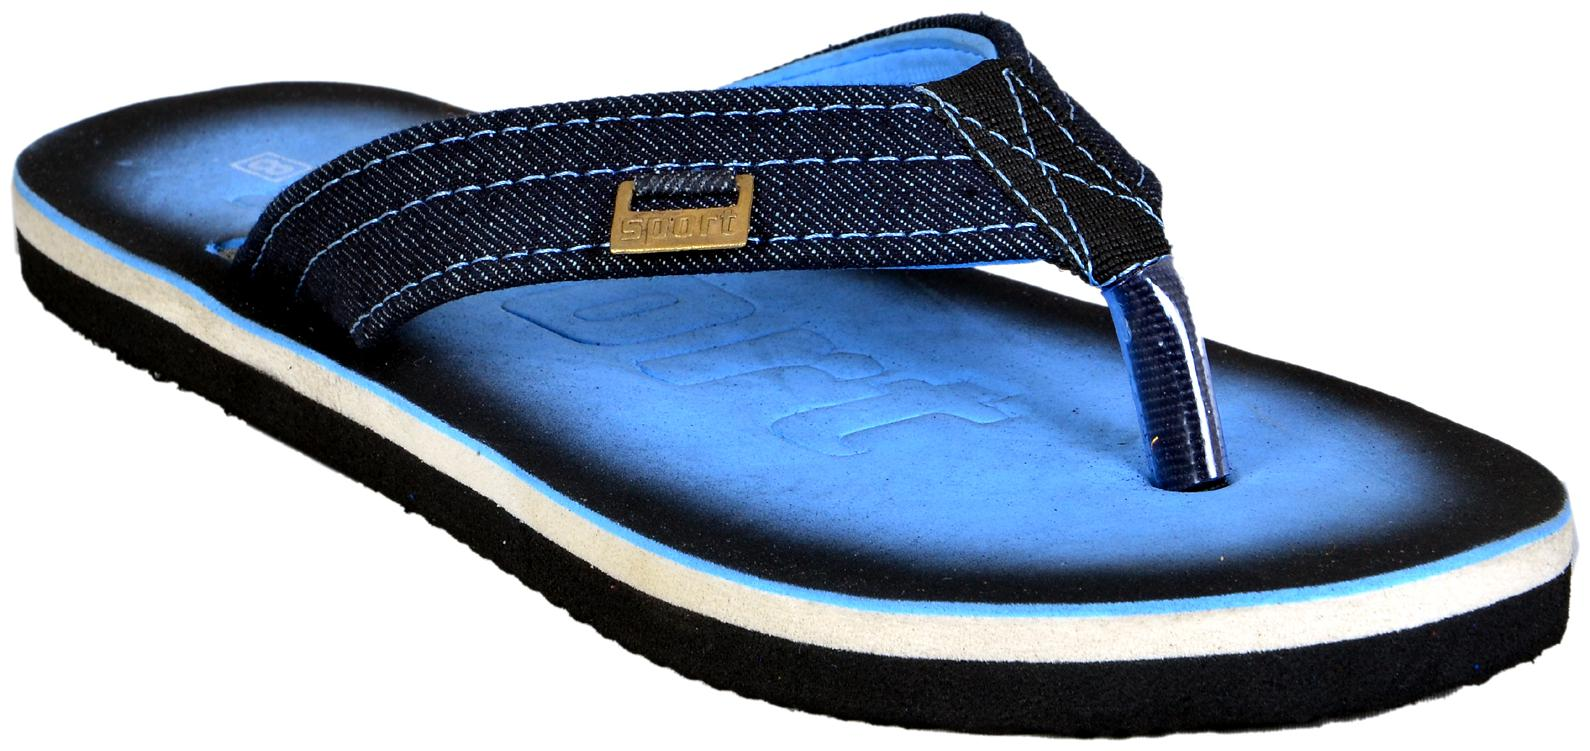 Crazy Bunny Slippers & Flip-Flops For Men